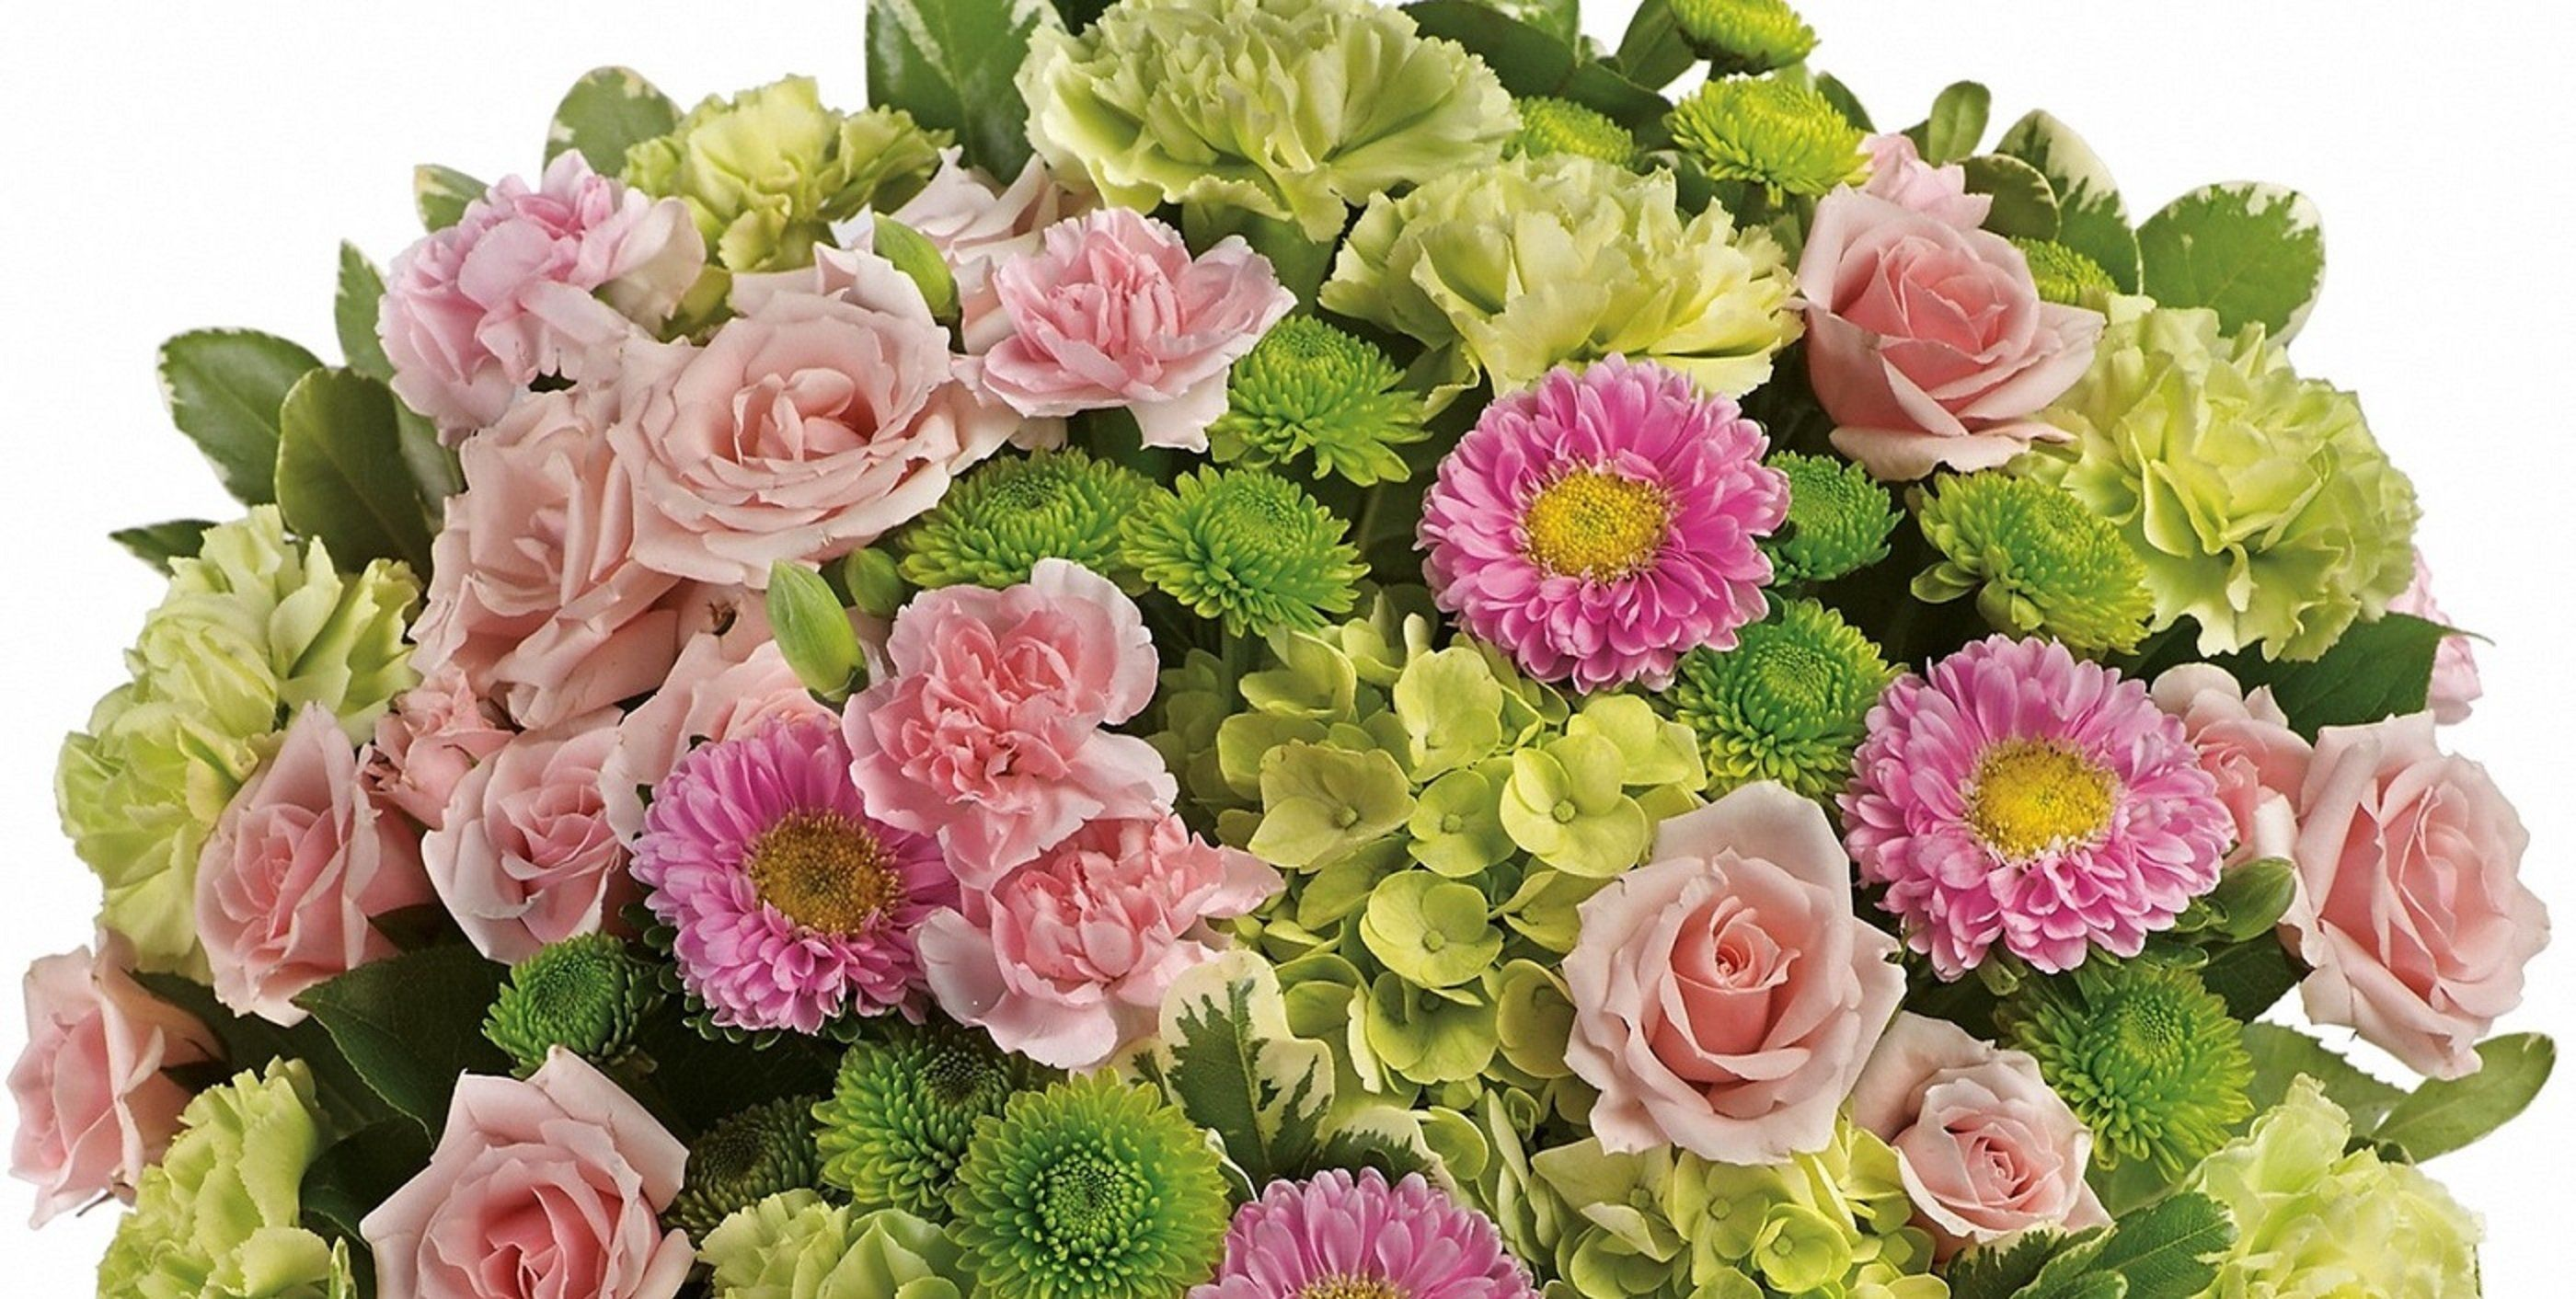 Flower bouquet delivery in Dubai that, clients will